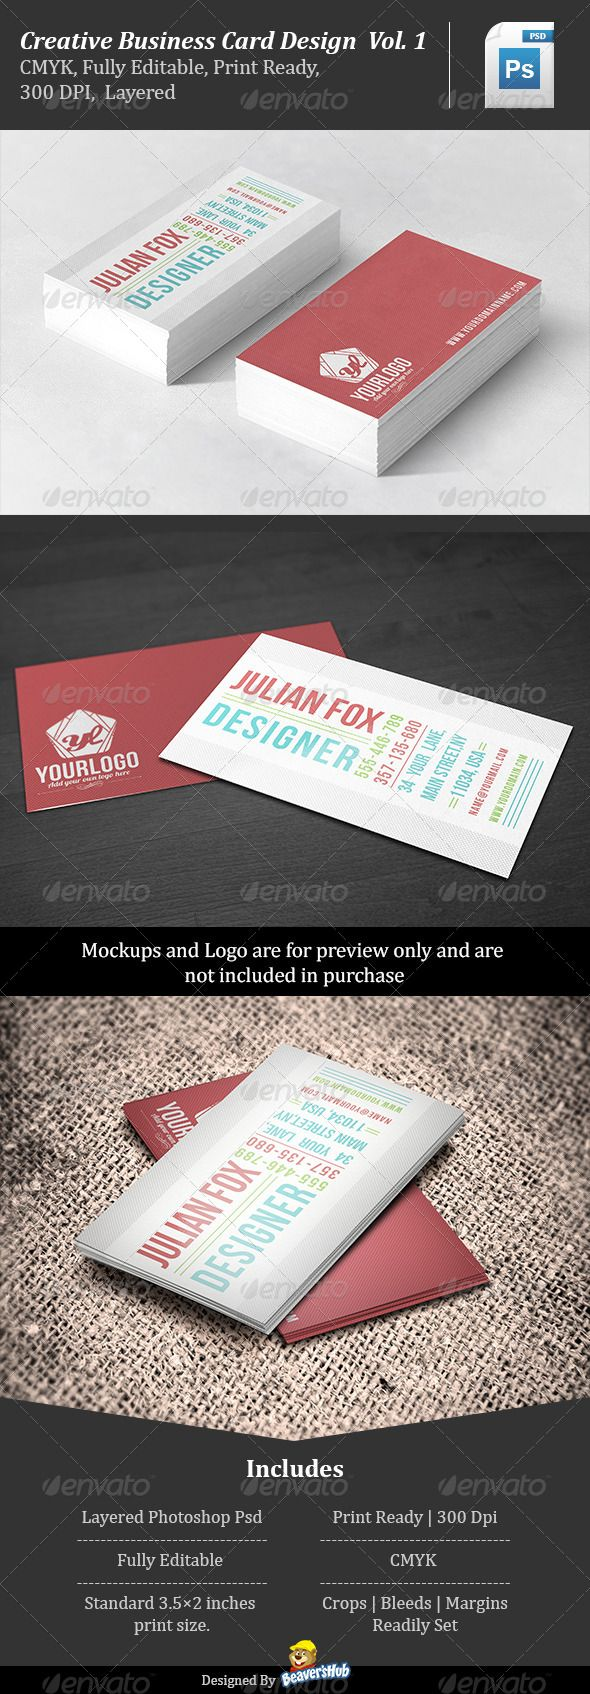 Font for business cards images free business cards professional fonts for business cards caroleandellie professional fonts for business cards 81 best images about print magicingreecefo Image collections